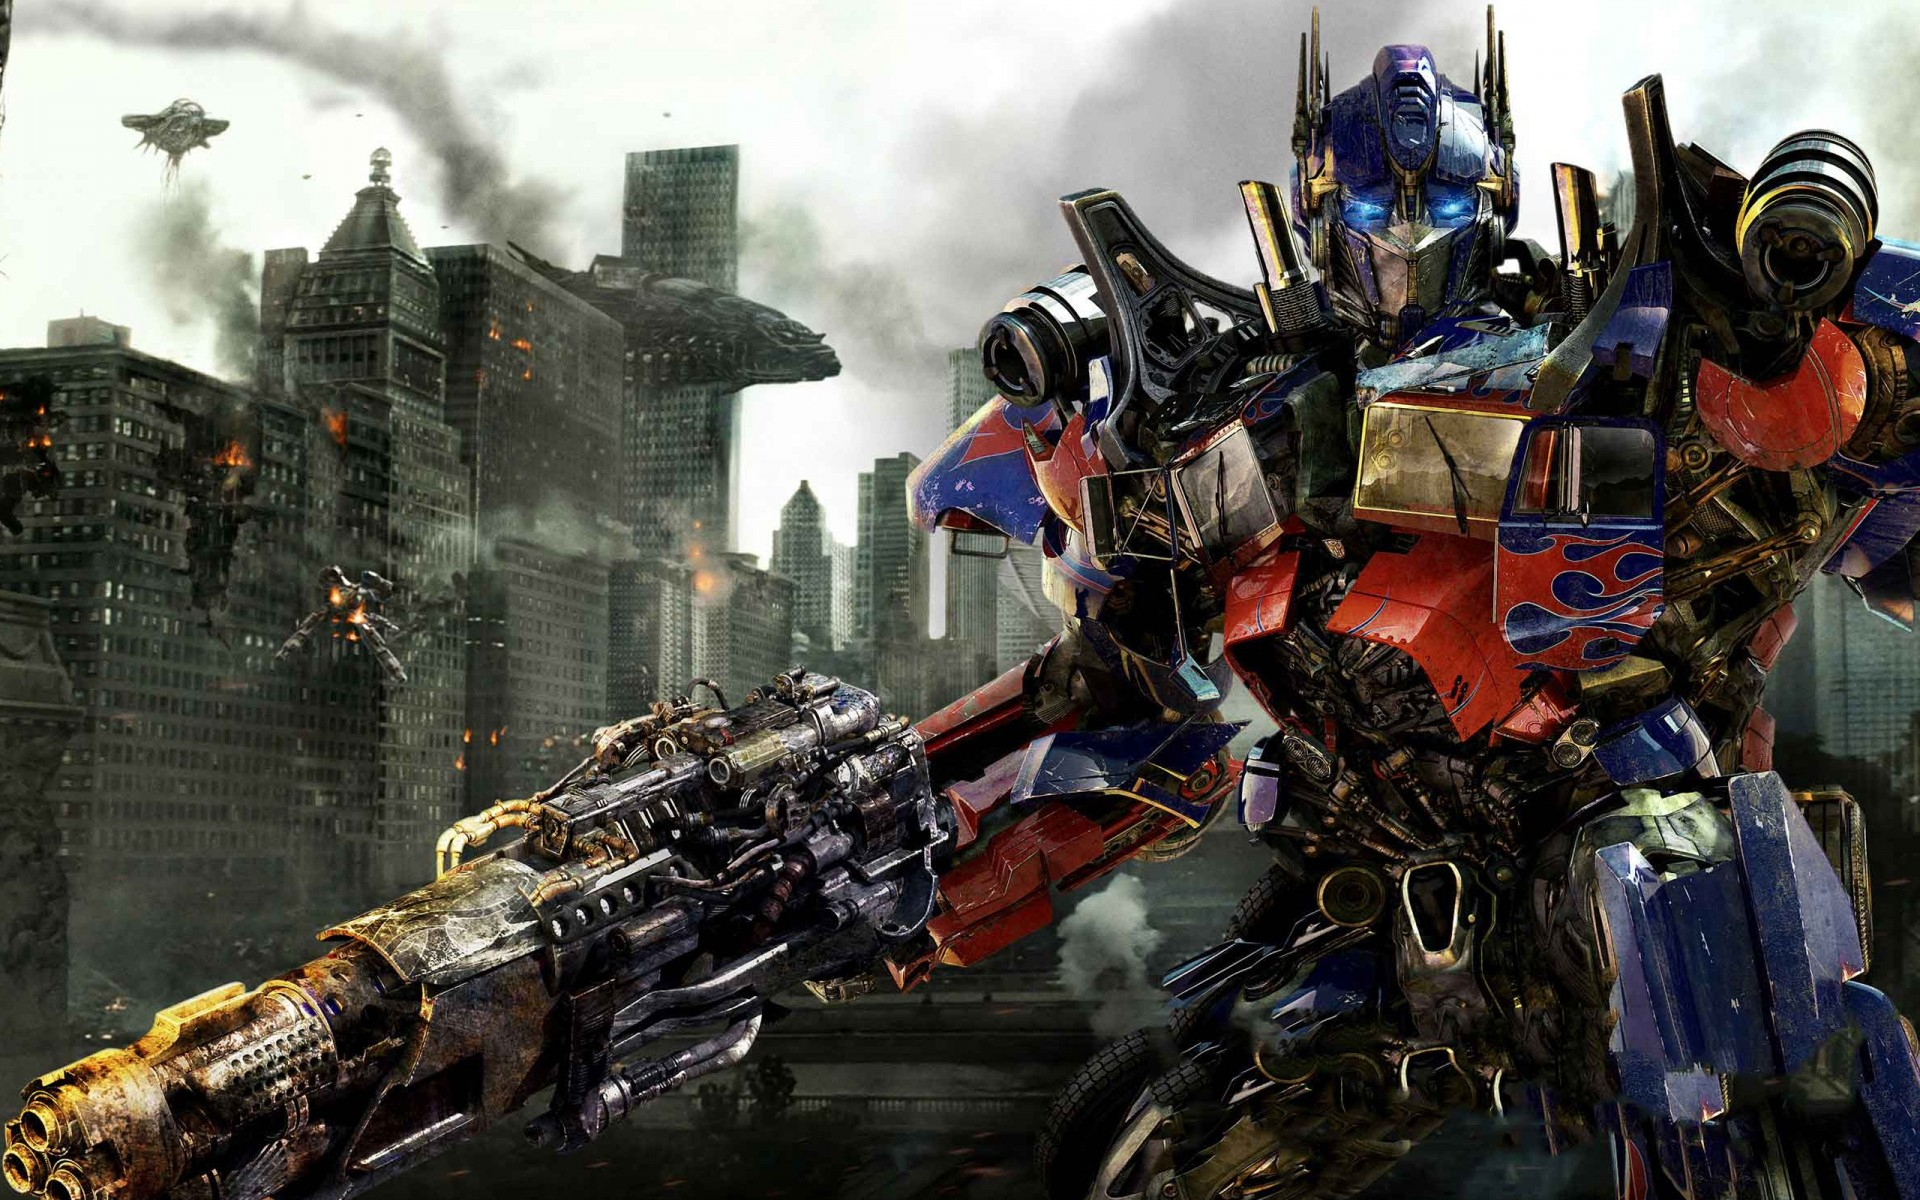 Windows 10 Wallpaper Hd Free Download Transformers 3 Optimus Prime Wallpapers Hd Wallpapers